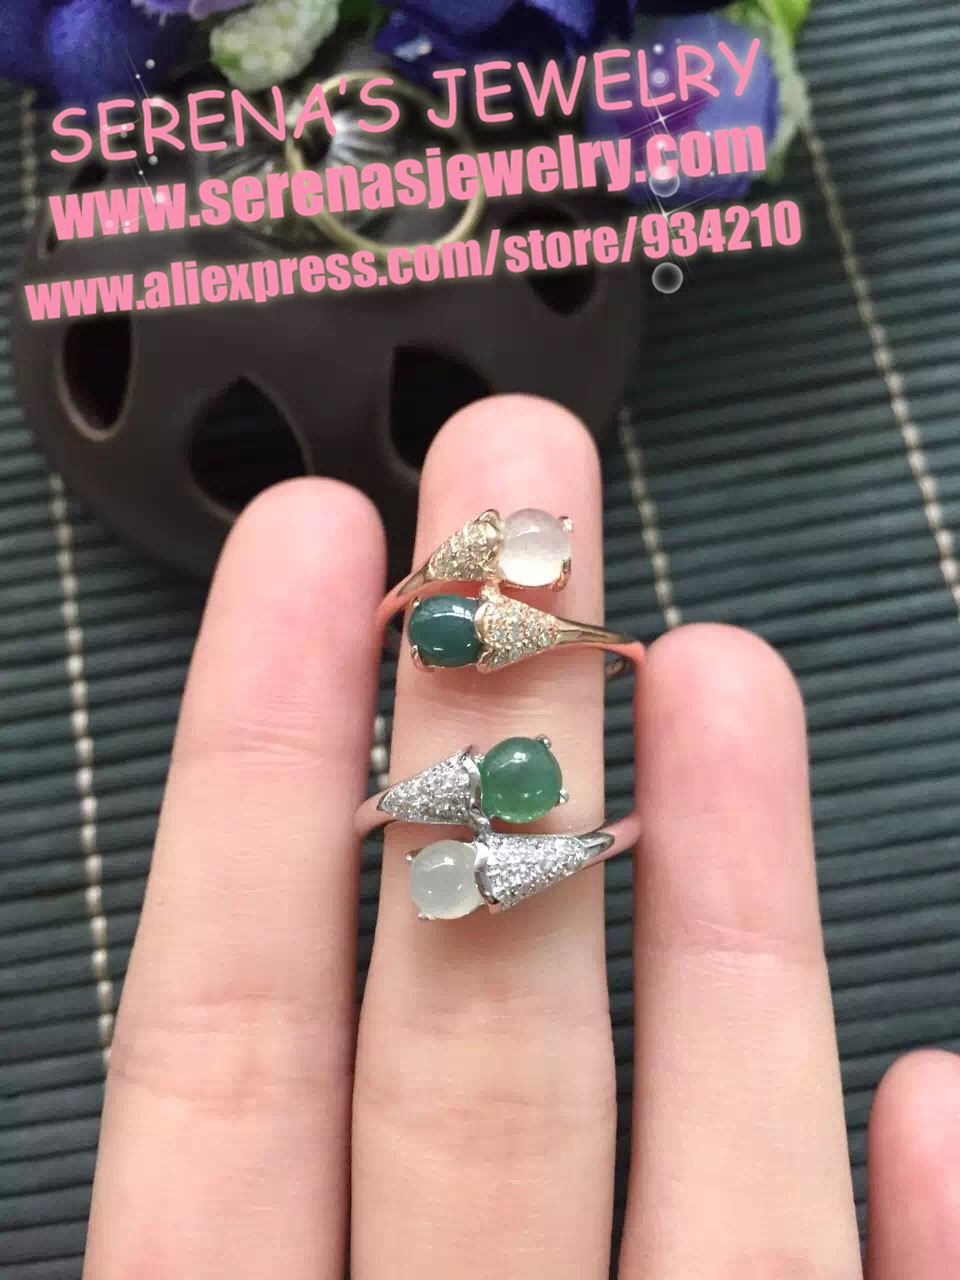 classic and elegant 925 sterling silver rose gold or silvery fine jewelry natural greed jade icy jadiete ring for women